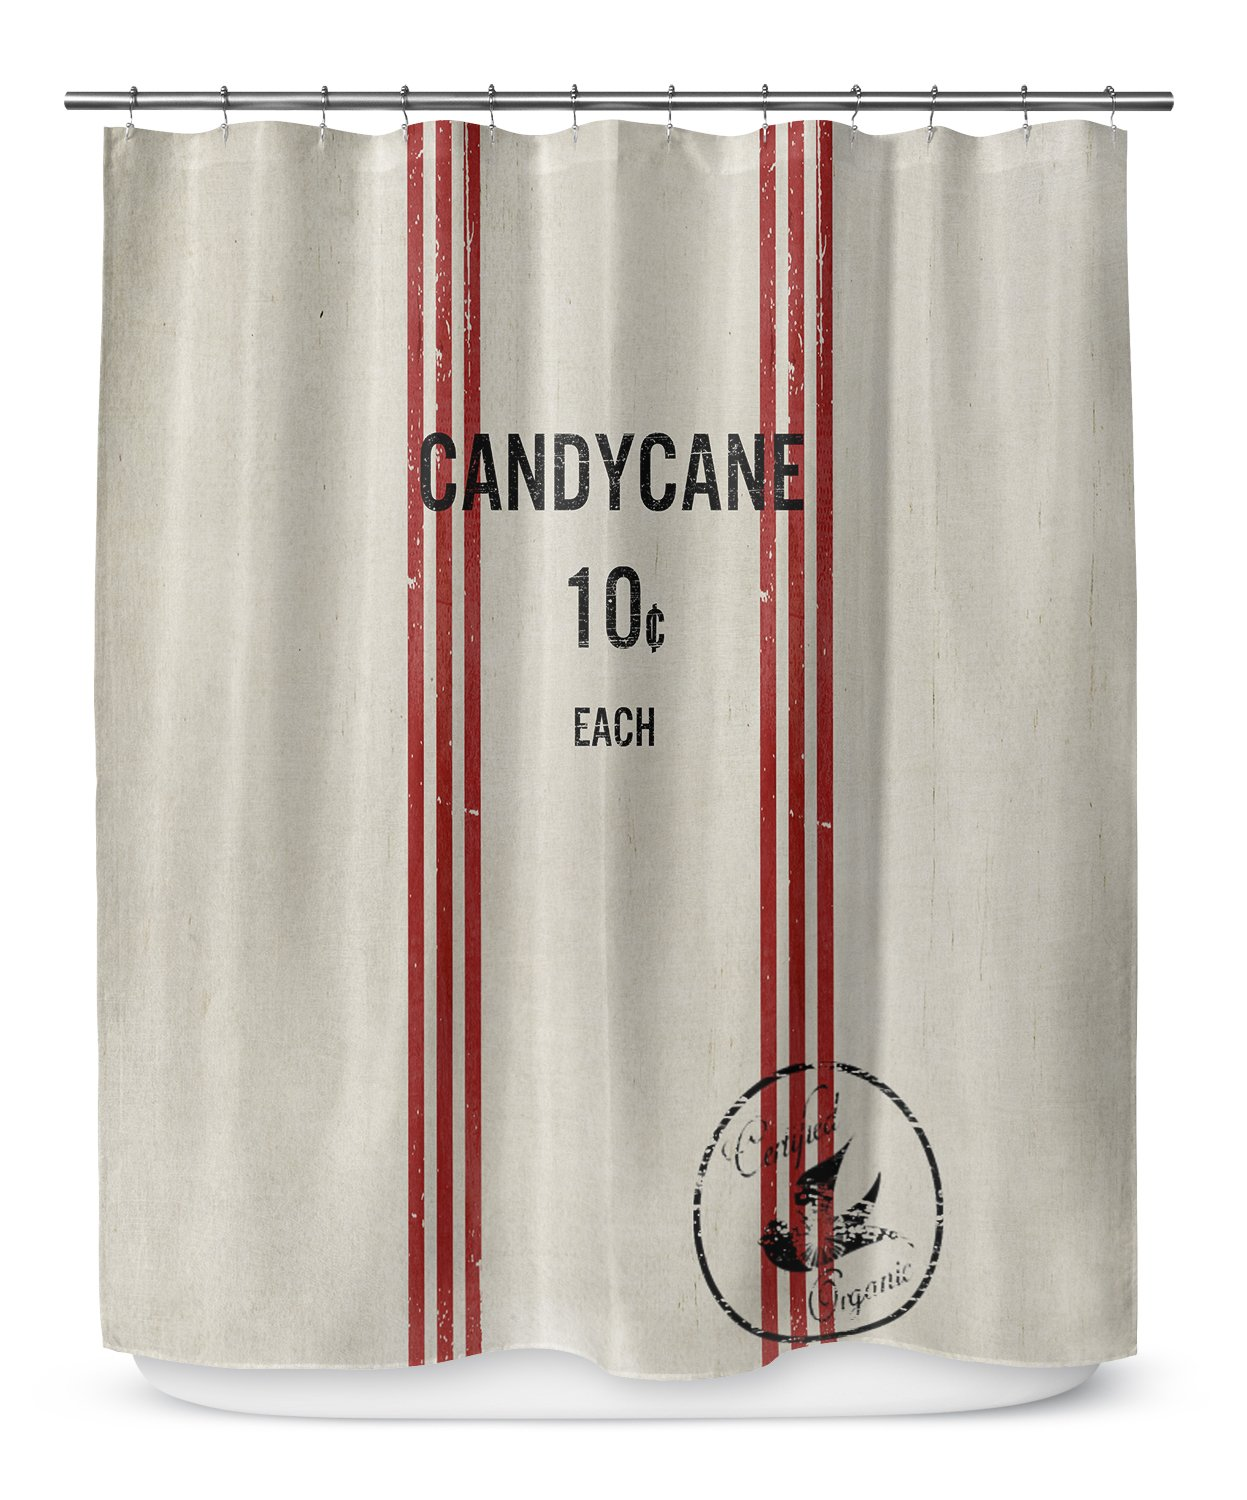 Amazon KAVKA Designs Candy Cane Shower Curtain Ivory Red Black